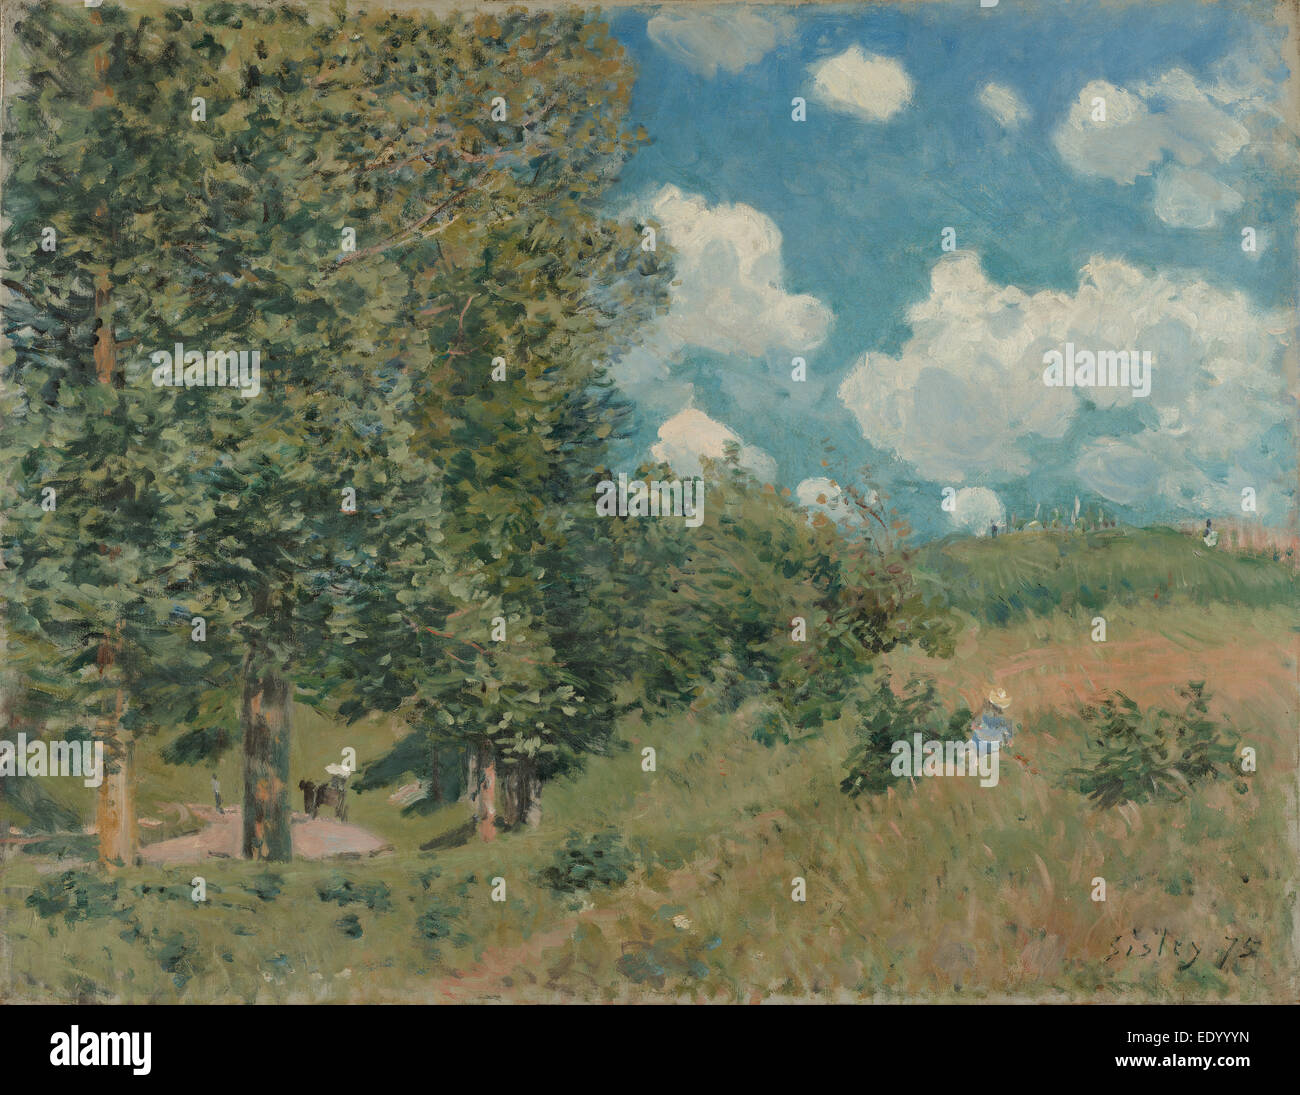 The Road from Versailles to Saint-Germain; Alfred Sisley, English, 1839 - 1899; 1875; Oil on canvas - Stock Image